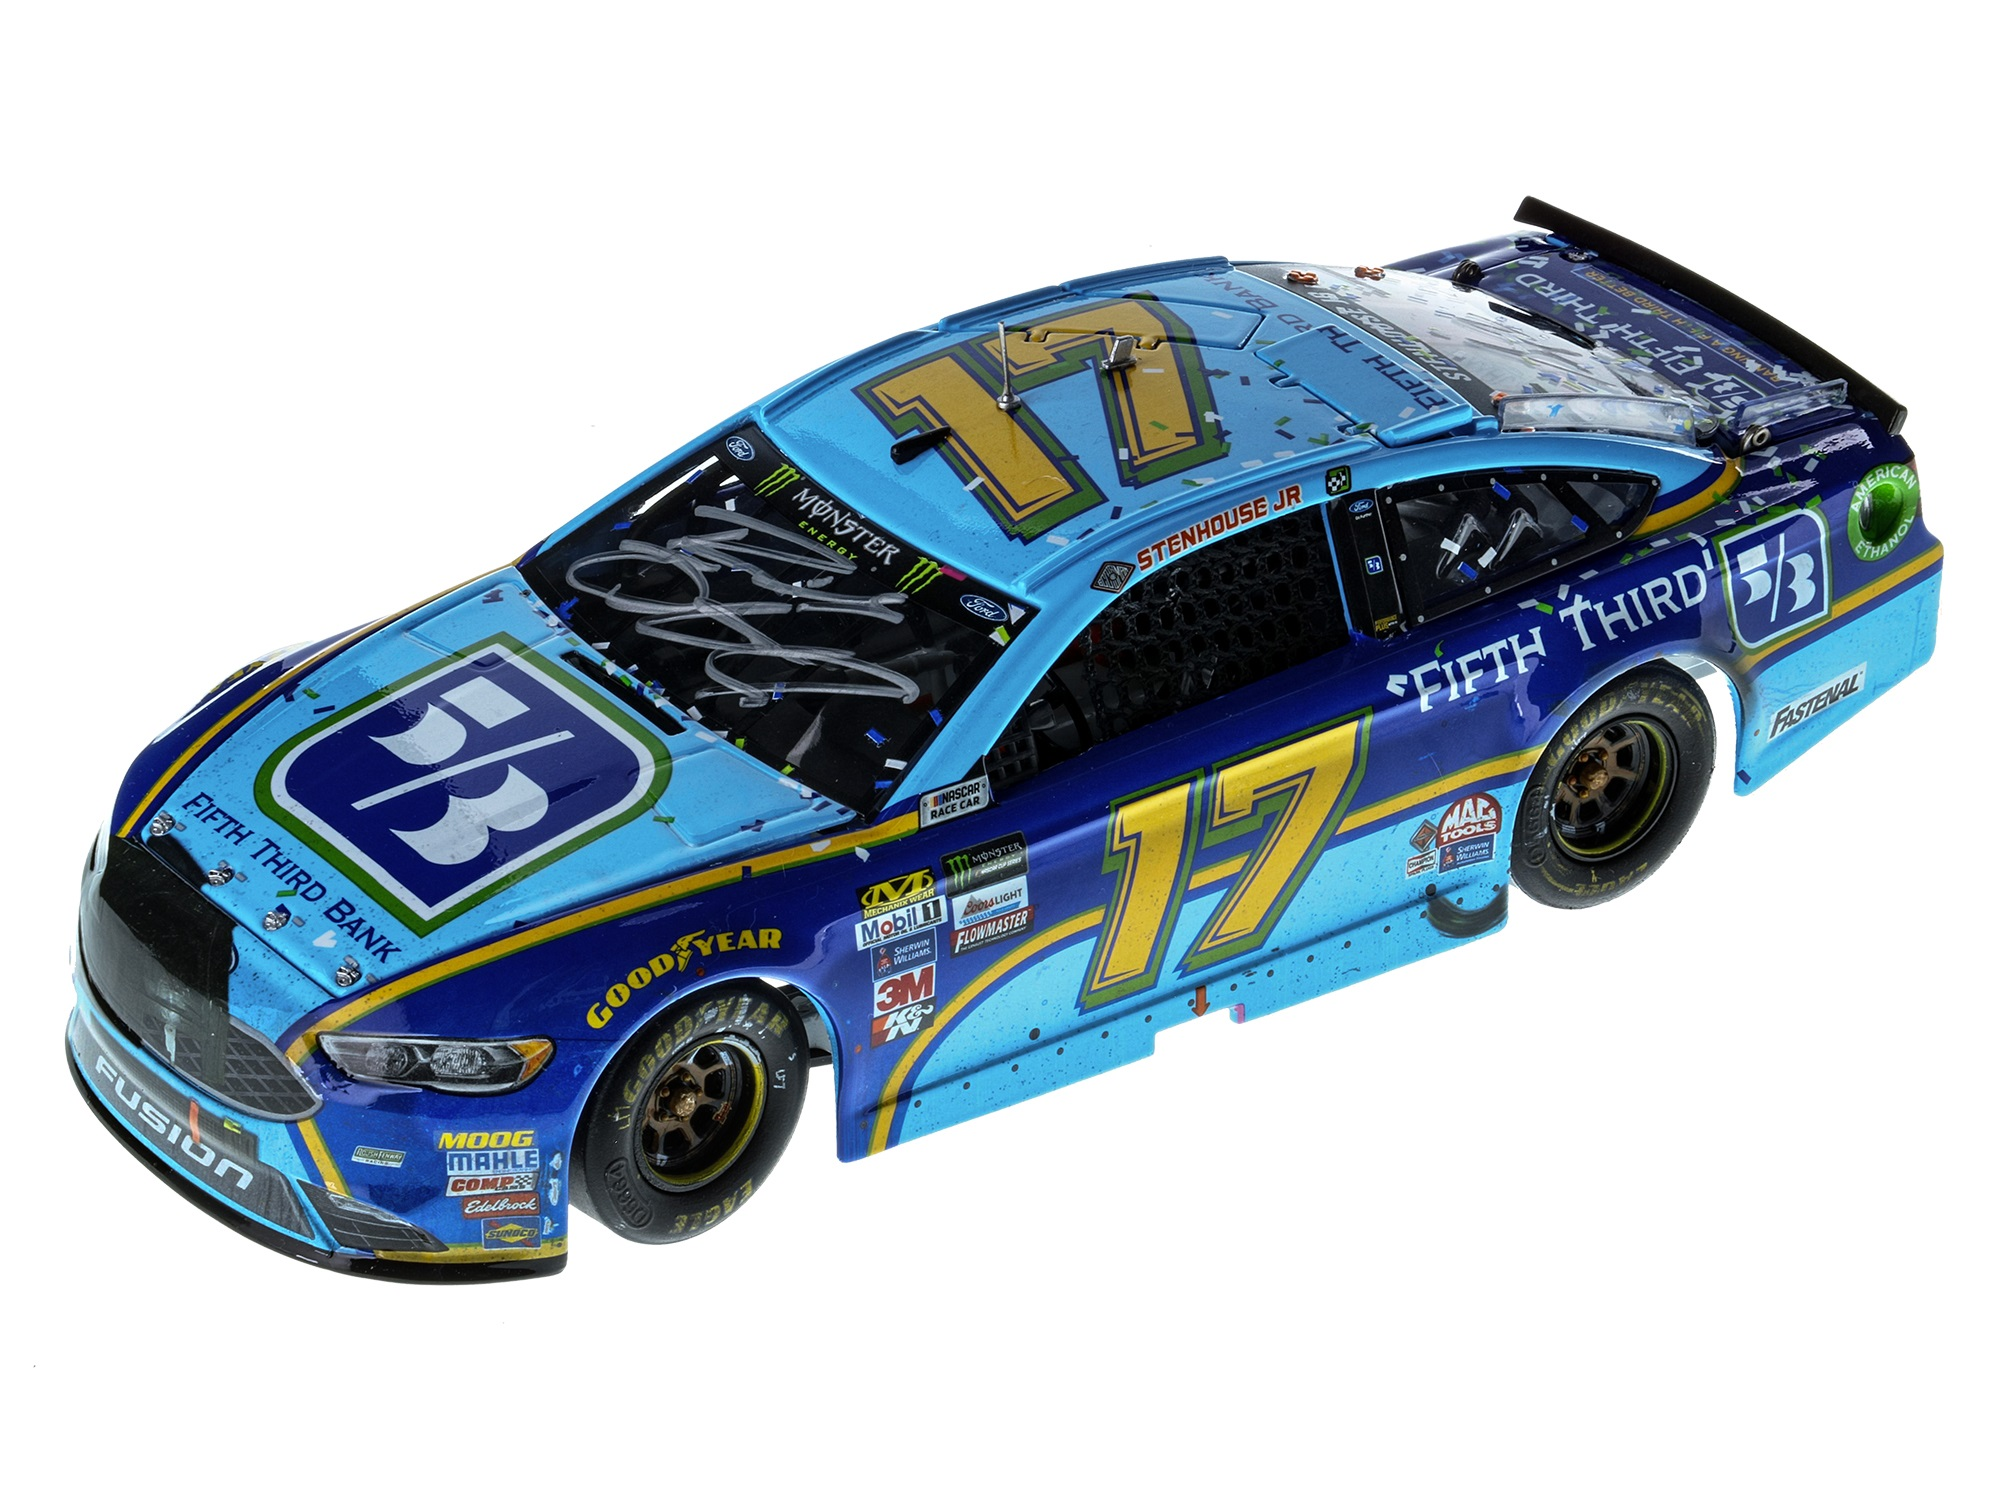 RICKY STENHOUSE JR 2017 FIFTH THIRD BANK TALLADEGA FIRST WIN 1:24 ELITE - DUAL AUTOGRAPHED!